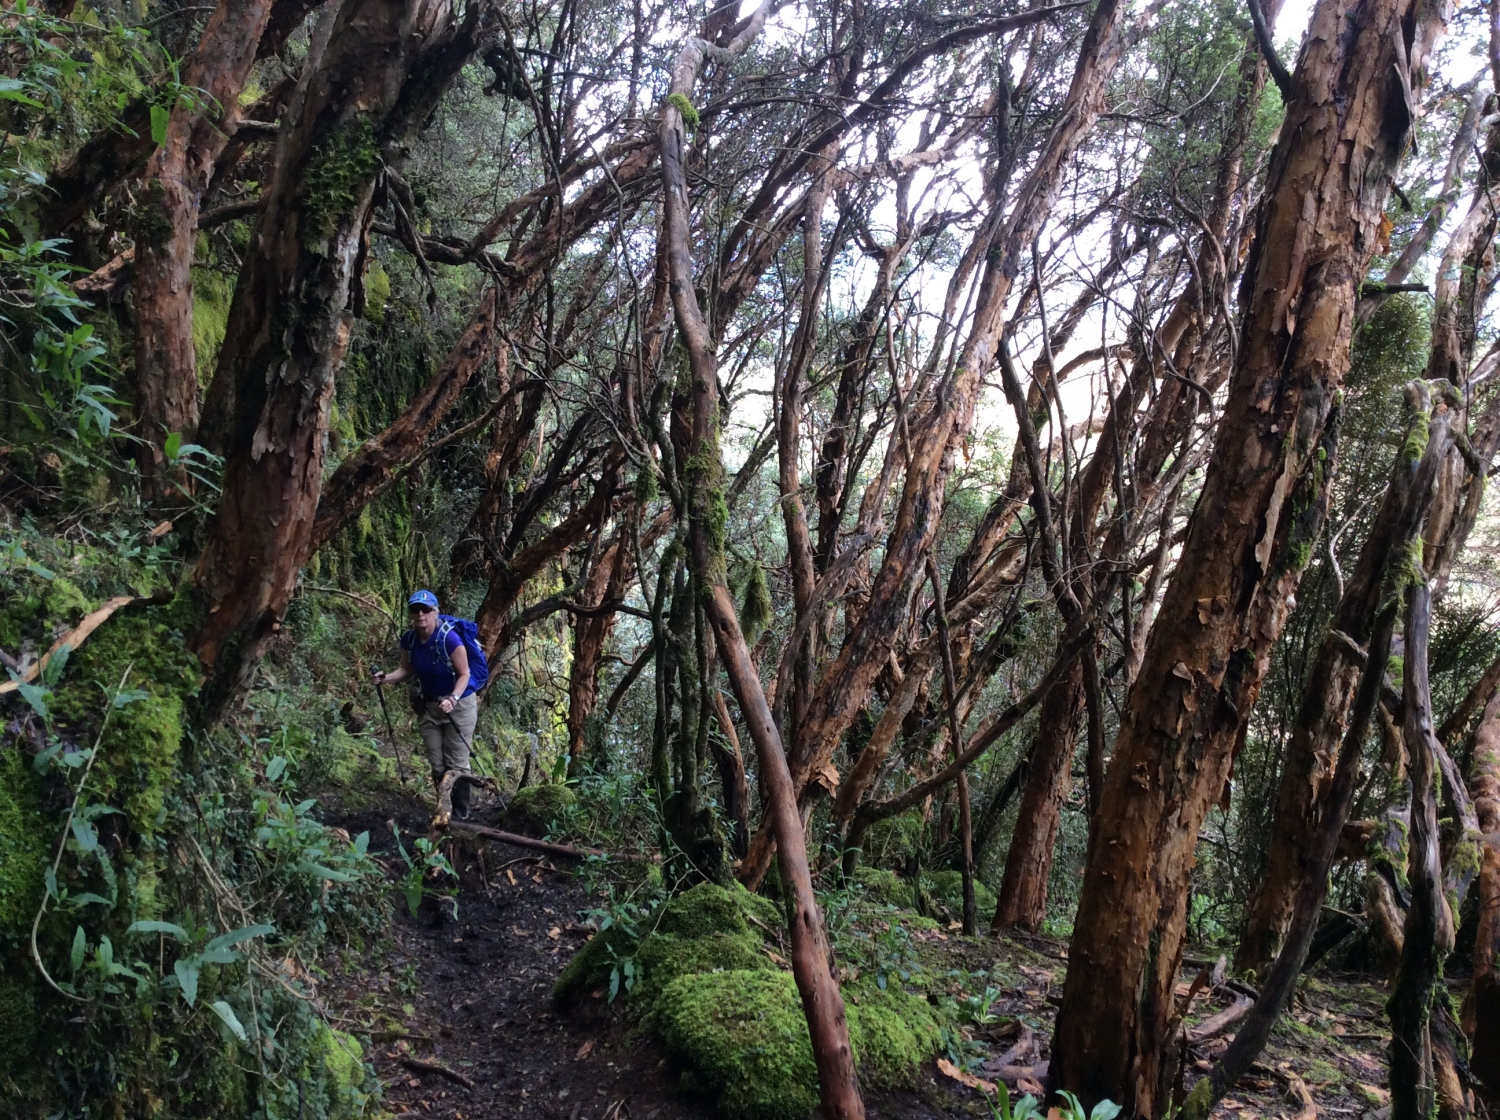 Ecuador | Dee hiking through an endangered Polylepis forest